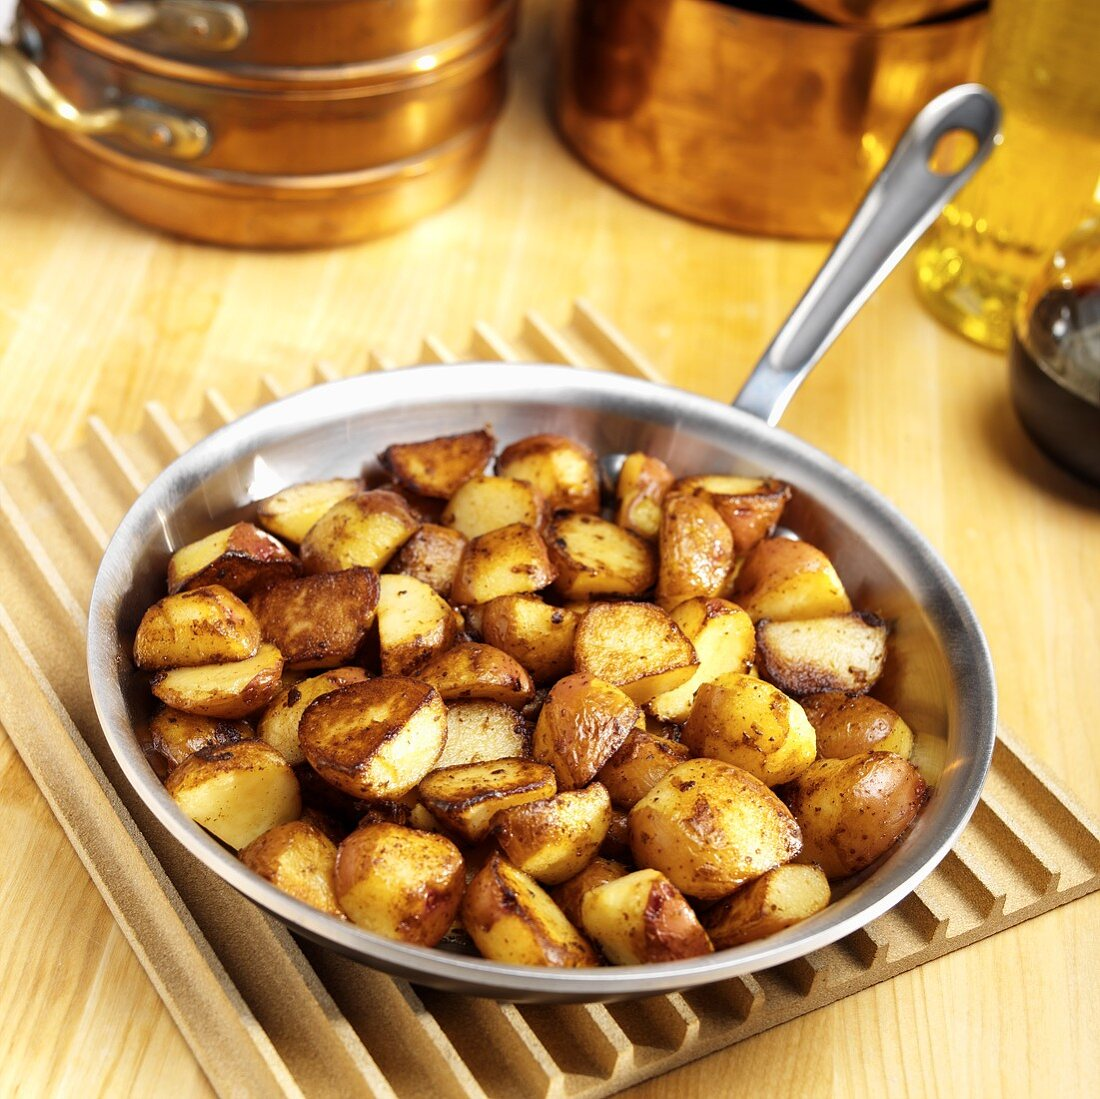 Fried potatoes in the frying pan